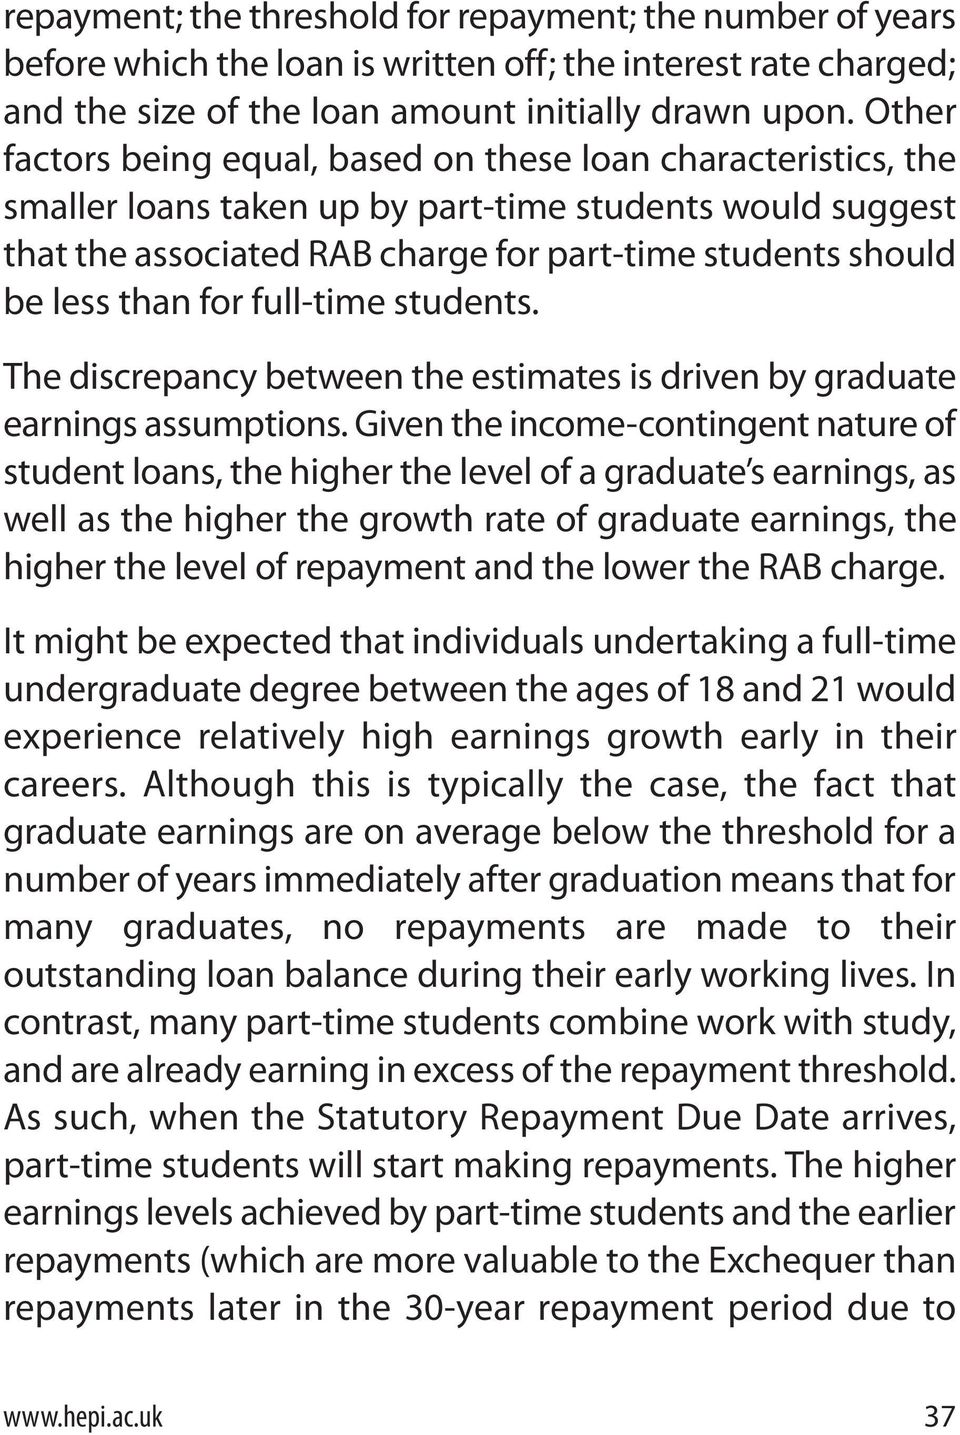 than for full-time students. The discrepancy between the estimates is driven by graduate earnings assumptions.